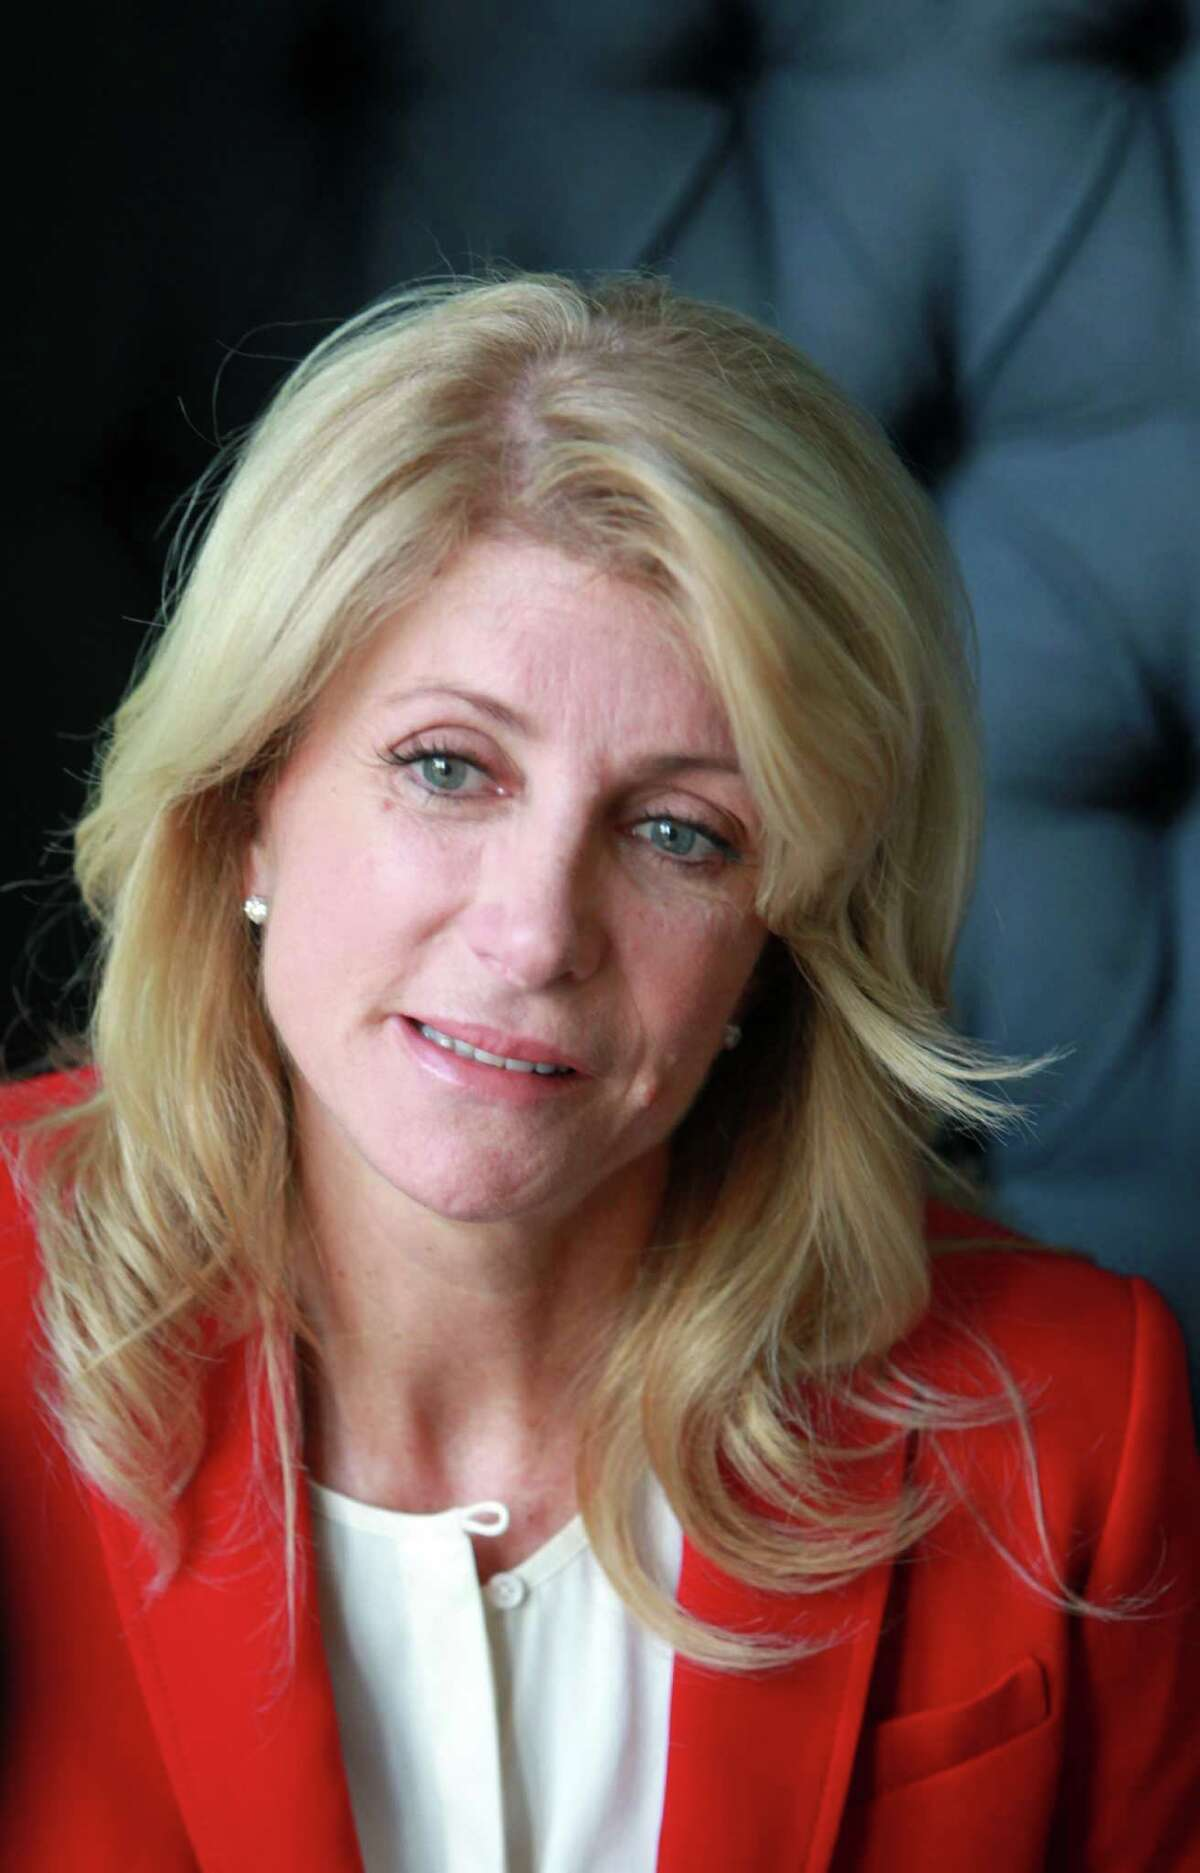 """Texas Sen. Wendy Davis was on the offensive Monday. """"I came from a place of struggle, and we can parse dates all day long,"""" she said of questions raised by Attorney General Greg Abbott."""